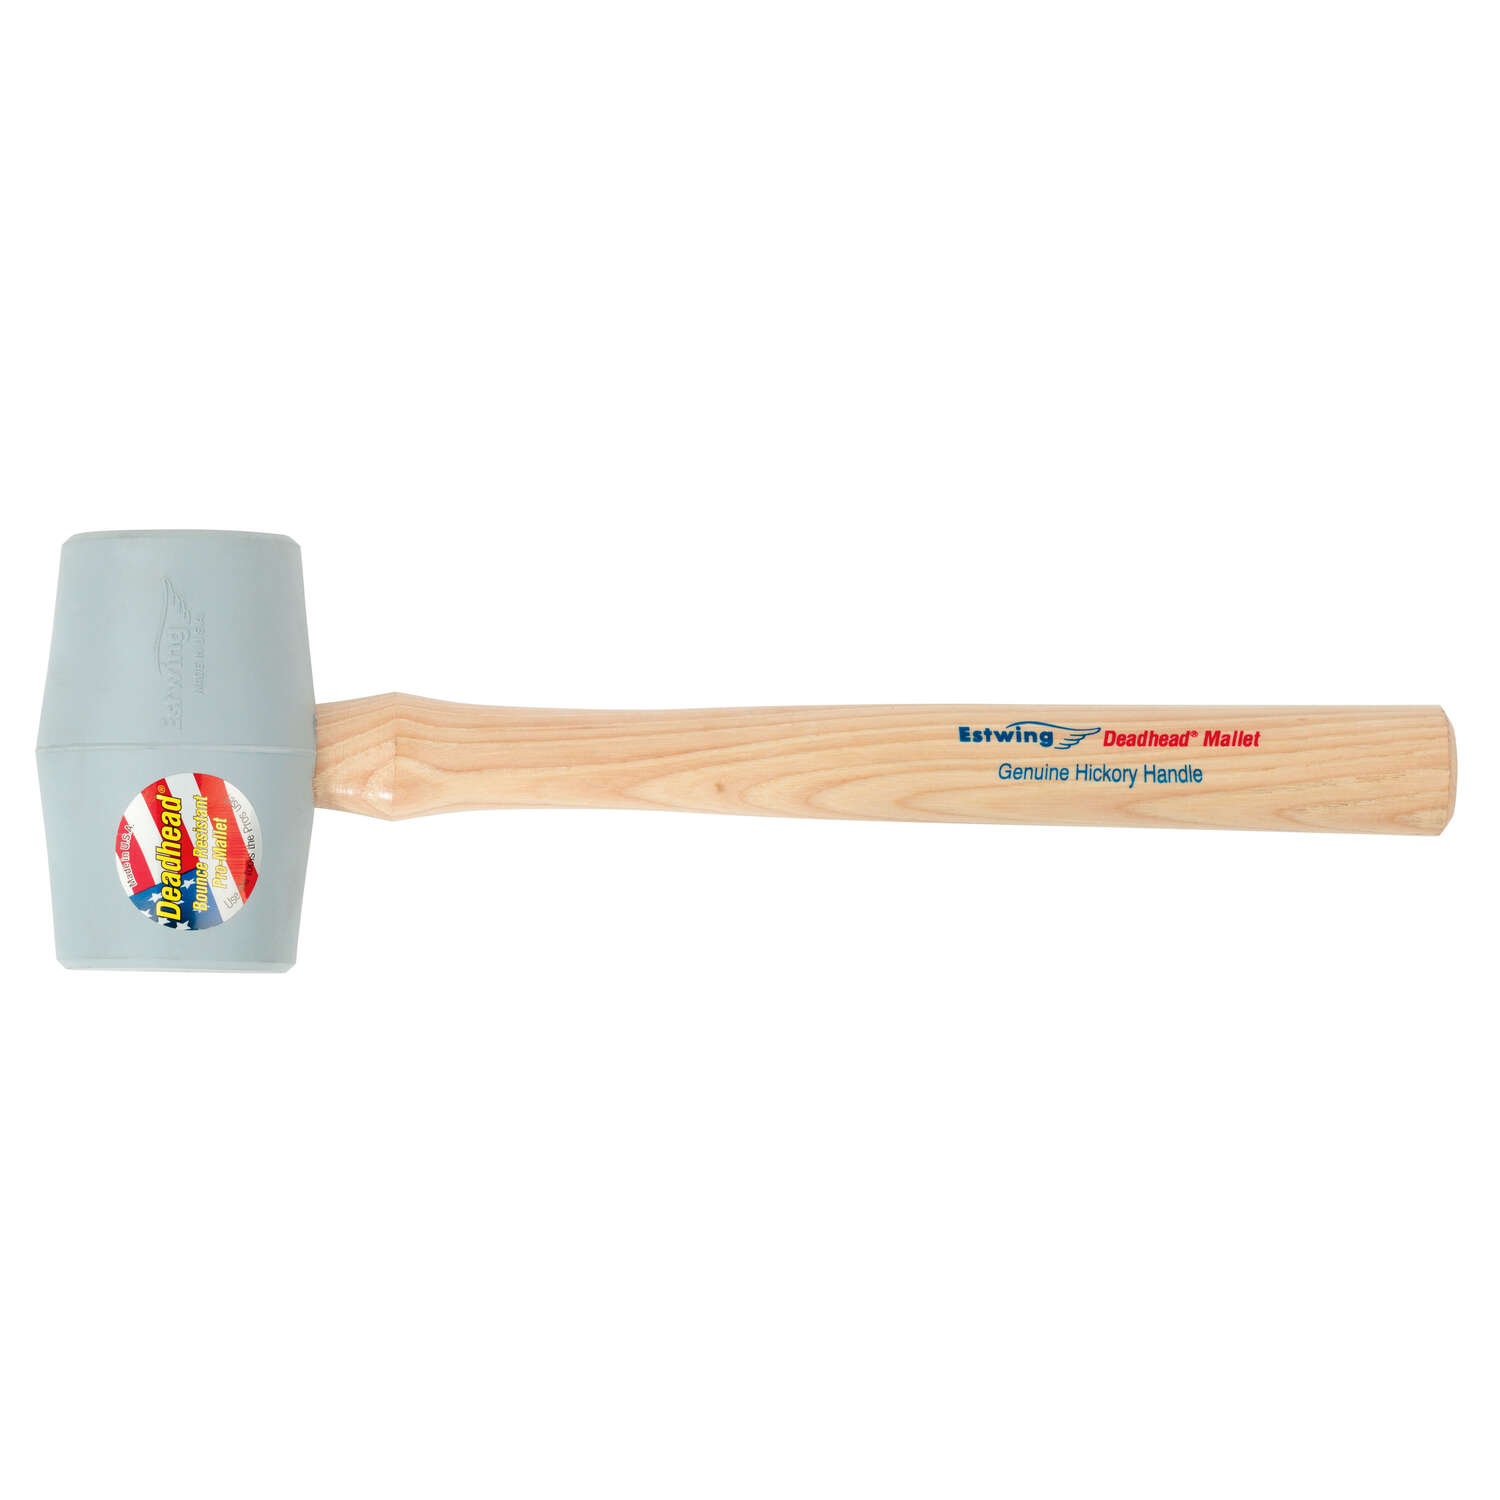 Estwing  Deadhead  18 oz. Mallet  Rubber Head 15 in. L